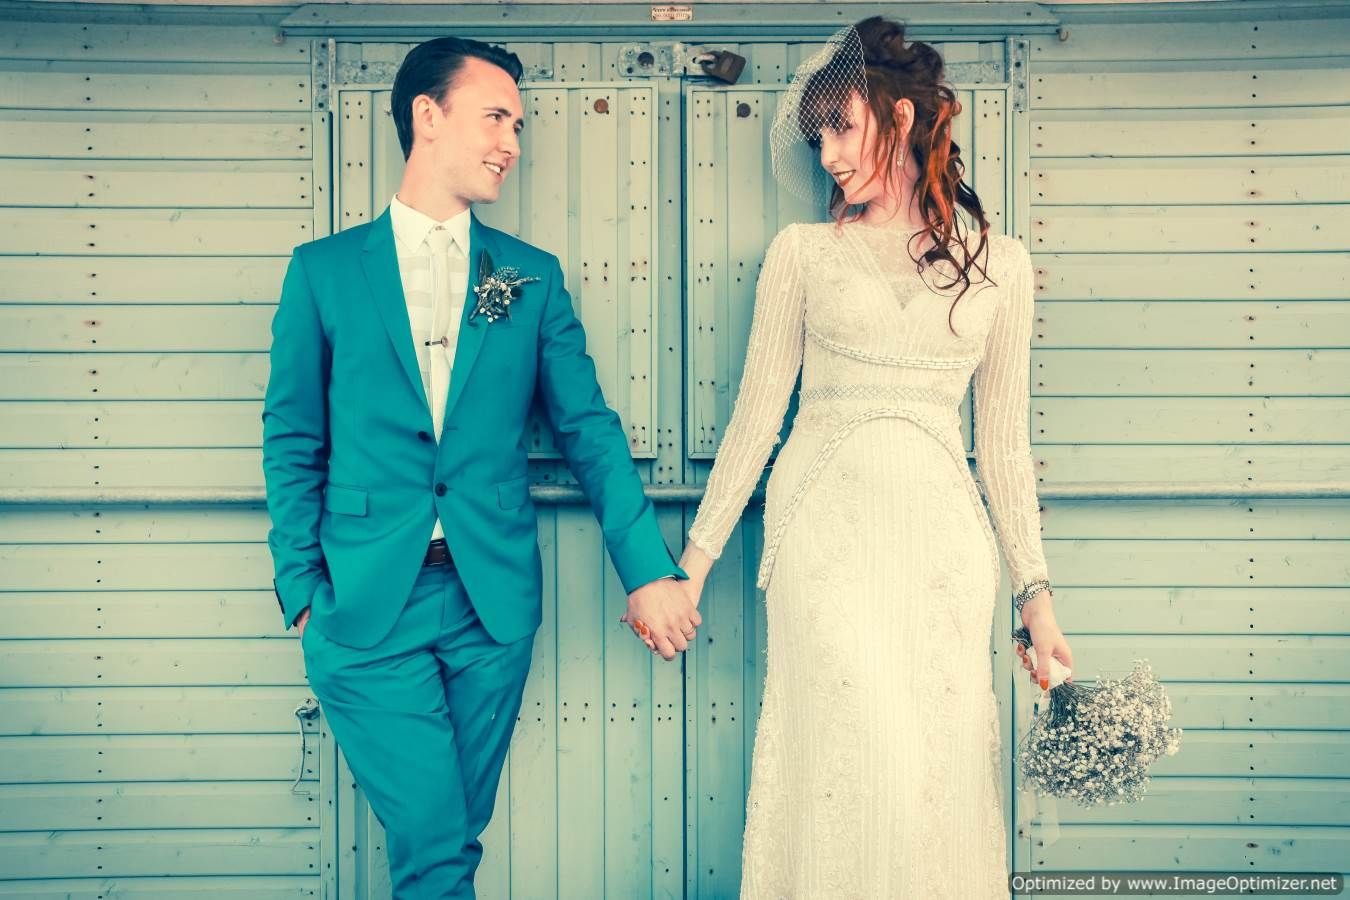 Me and my groom posing by a beach hut groom in turquoise paul smith